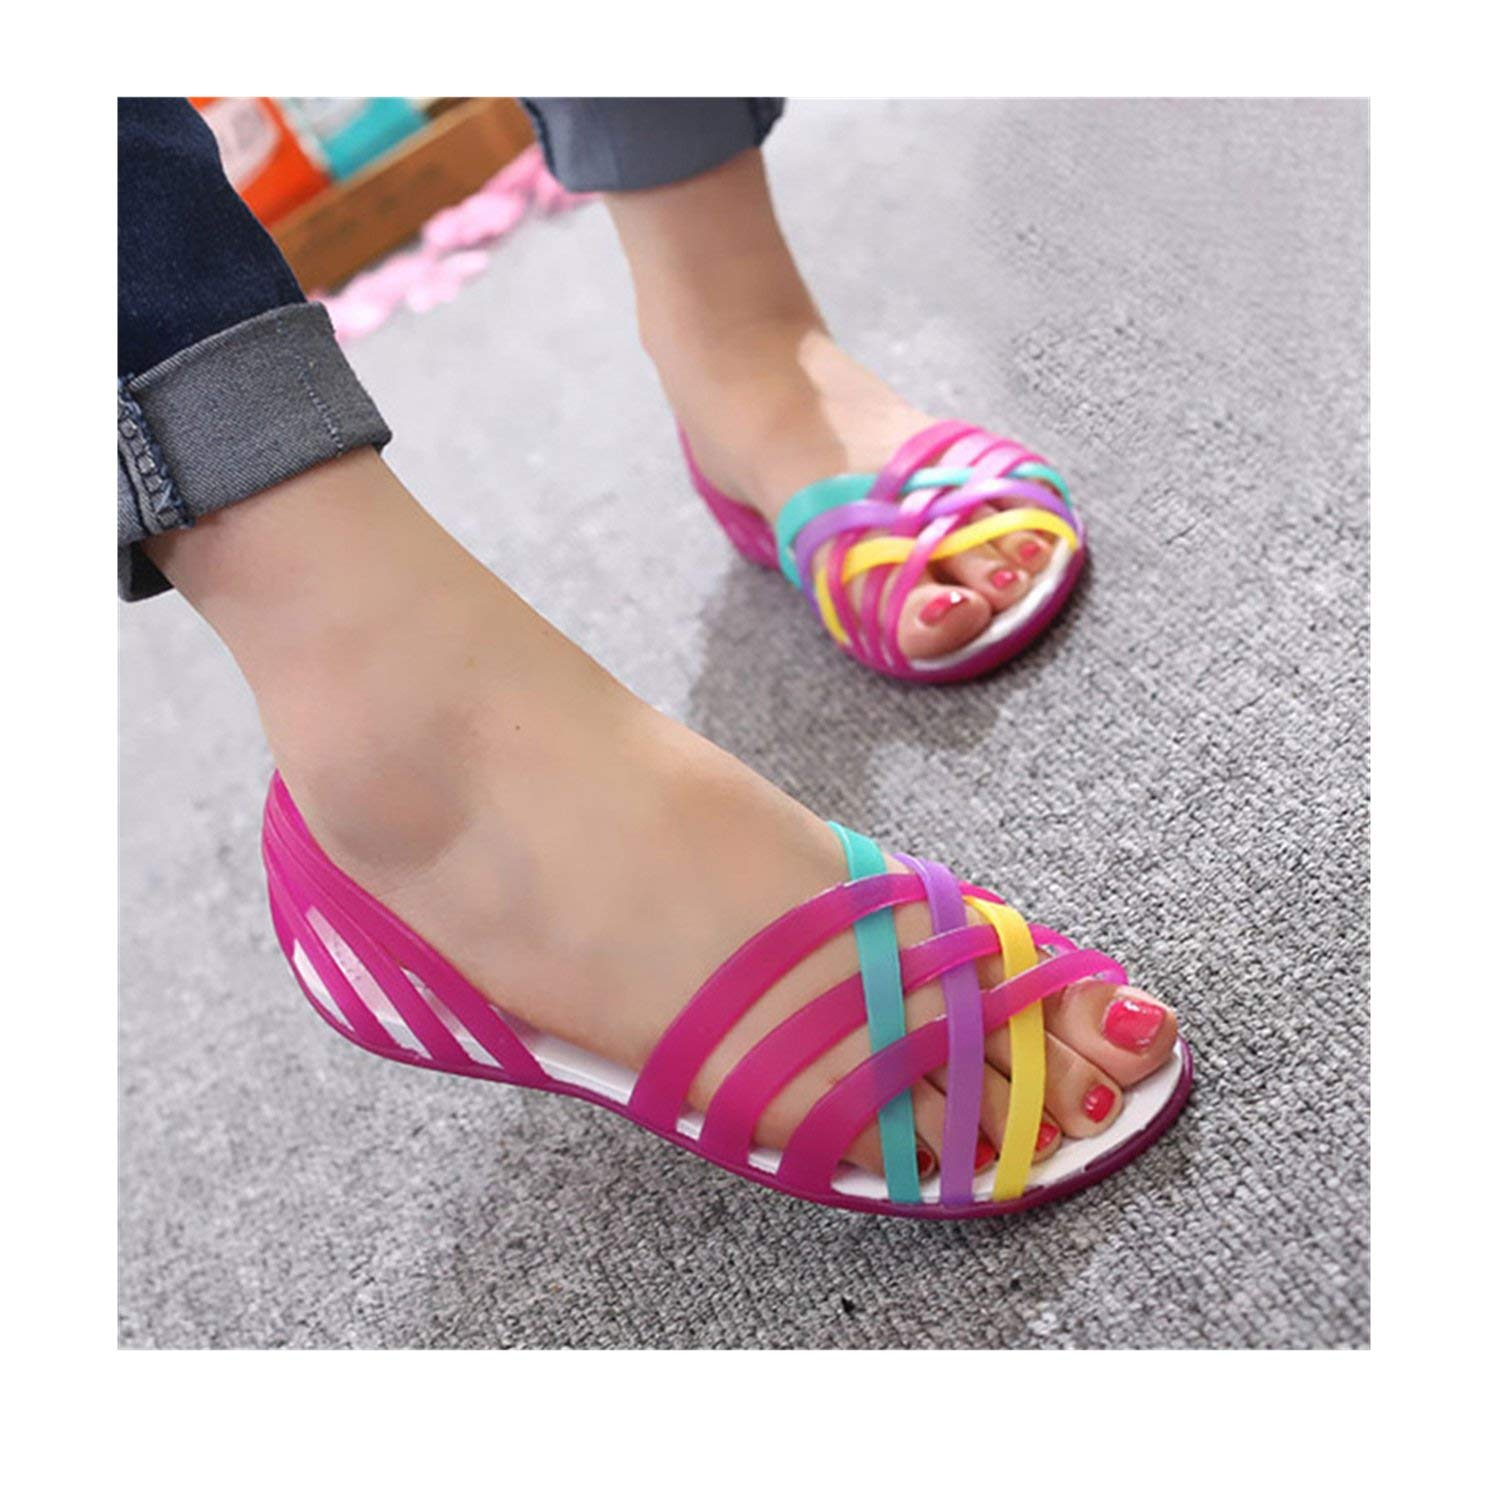 00ad34fb650c7 Get Quotations · Saneoo Women Sandals Summer New Candy Color Women Shoes  Beach Valentine Rainbow Croc Jelly Shoes Woman